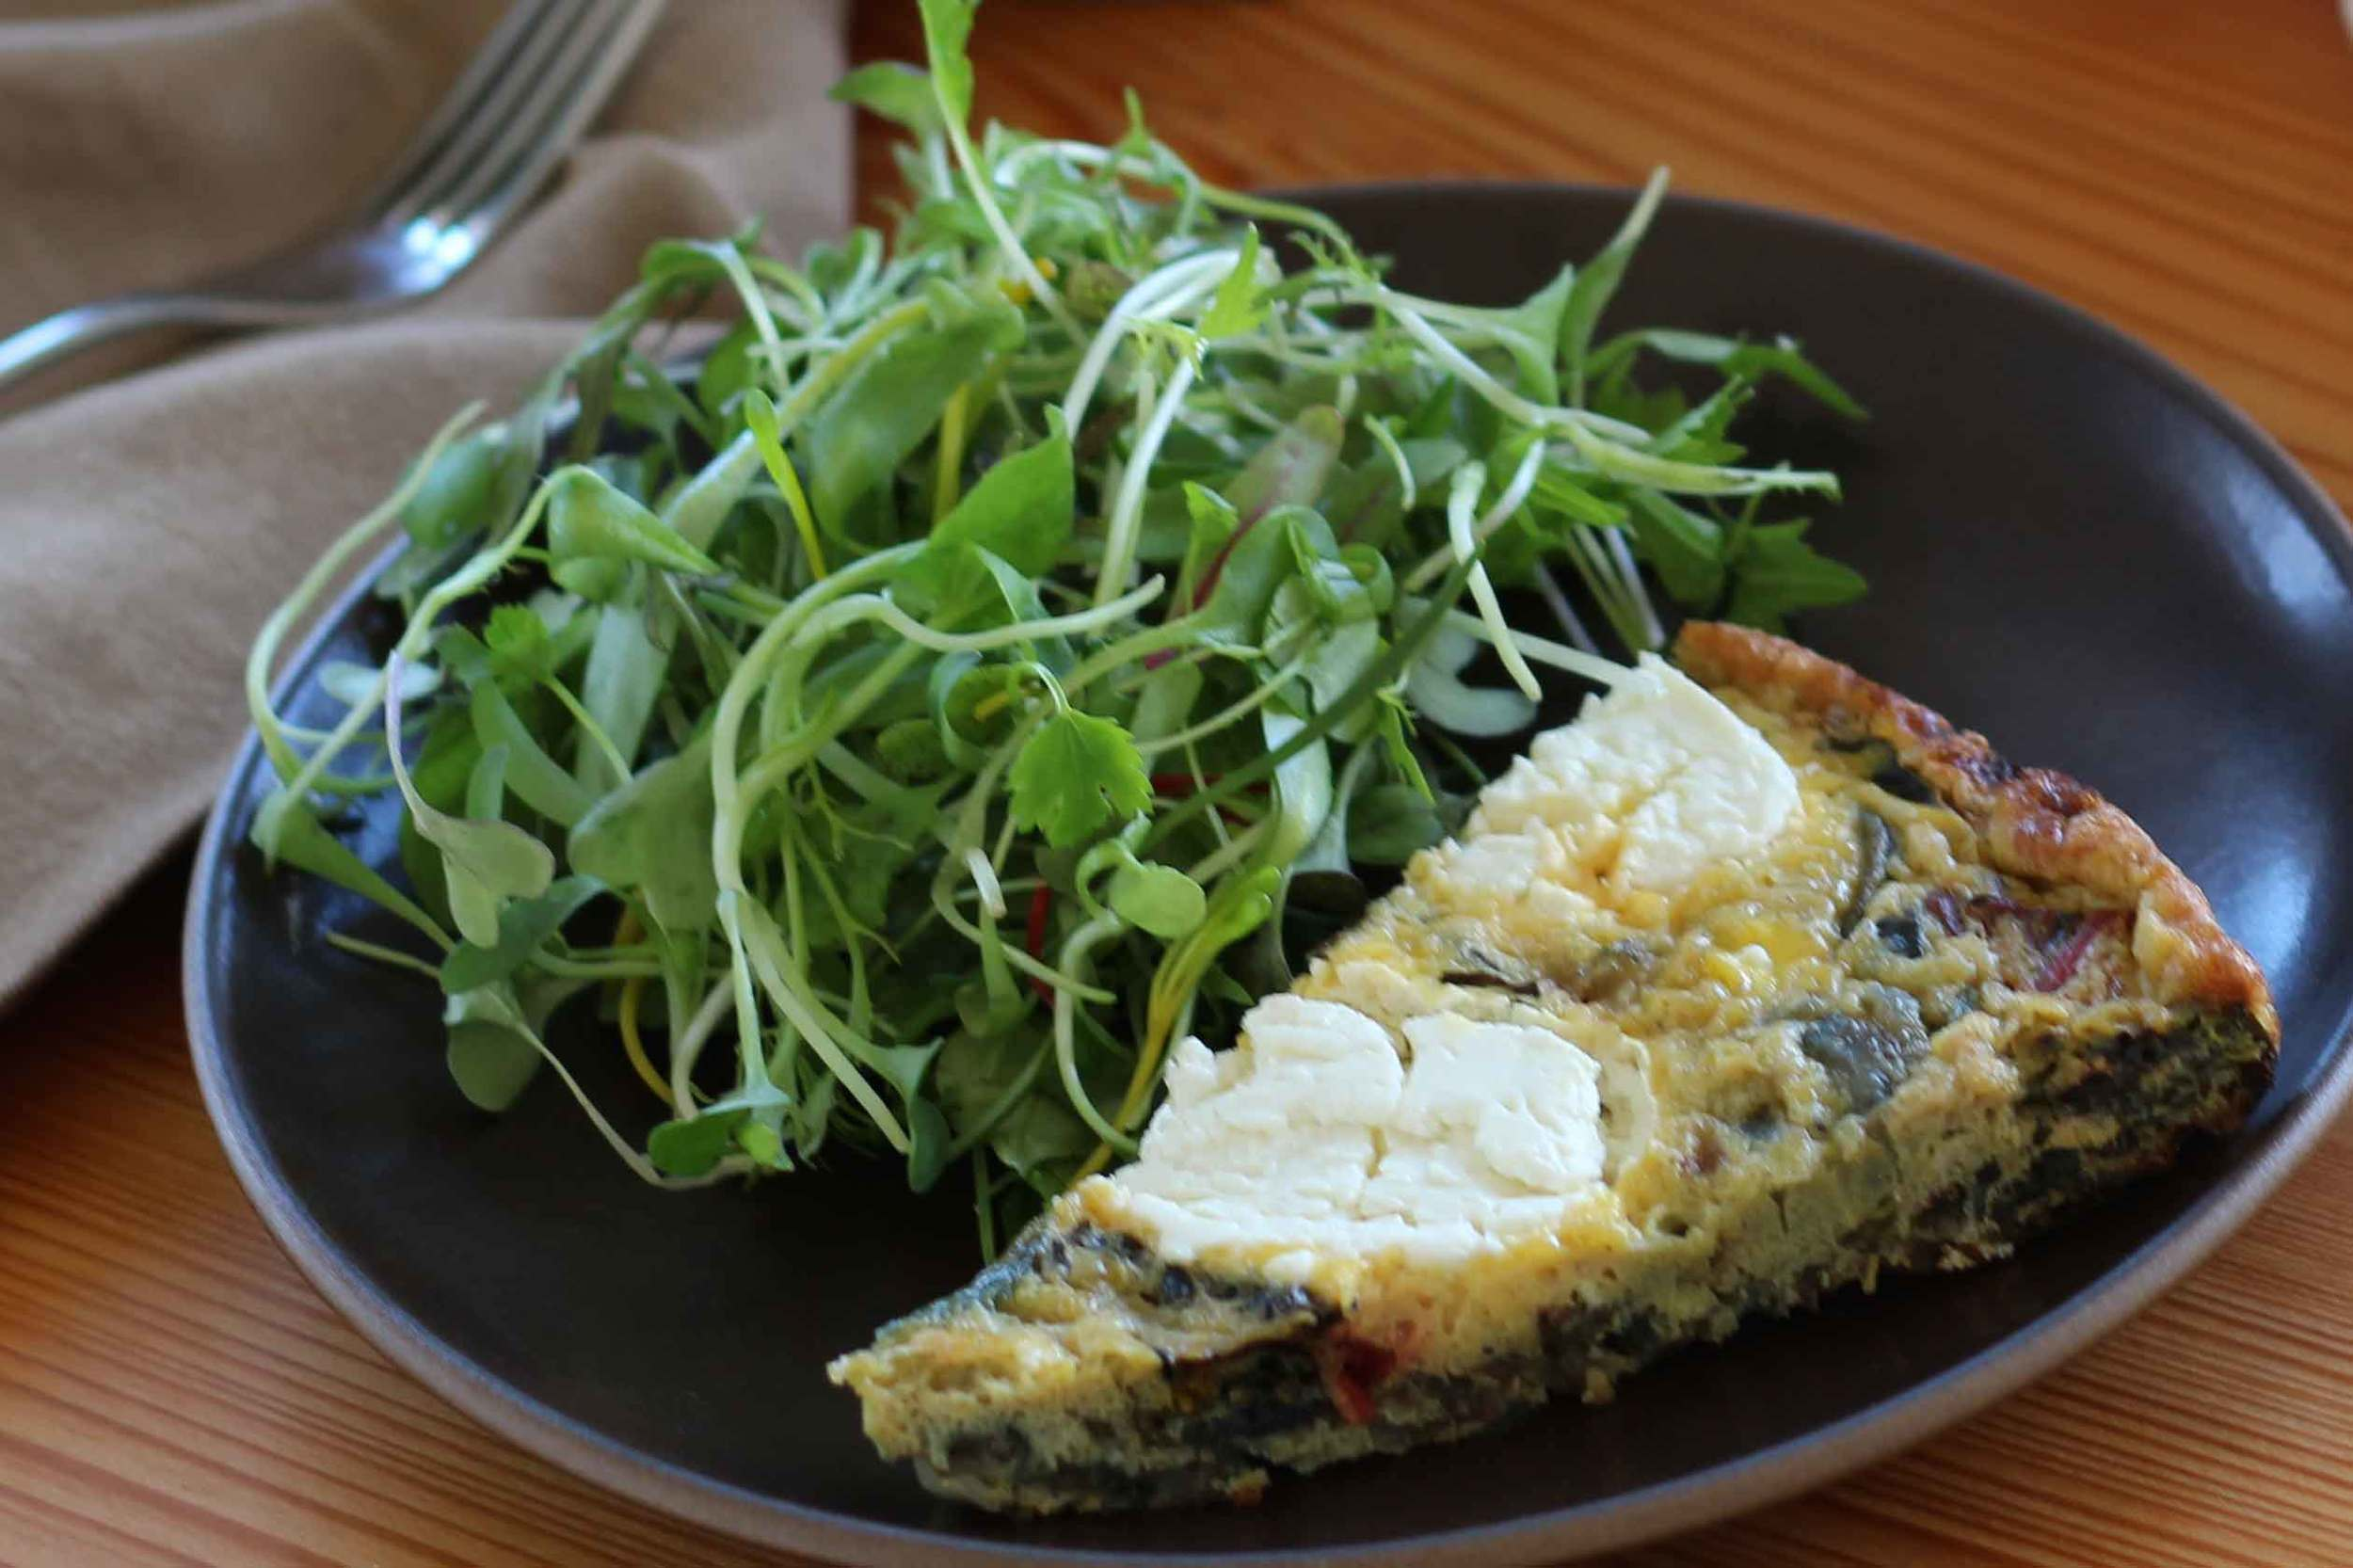 A salad of fresh herbs and tender greens makes a nice accompaniment for a wedge of frittata.